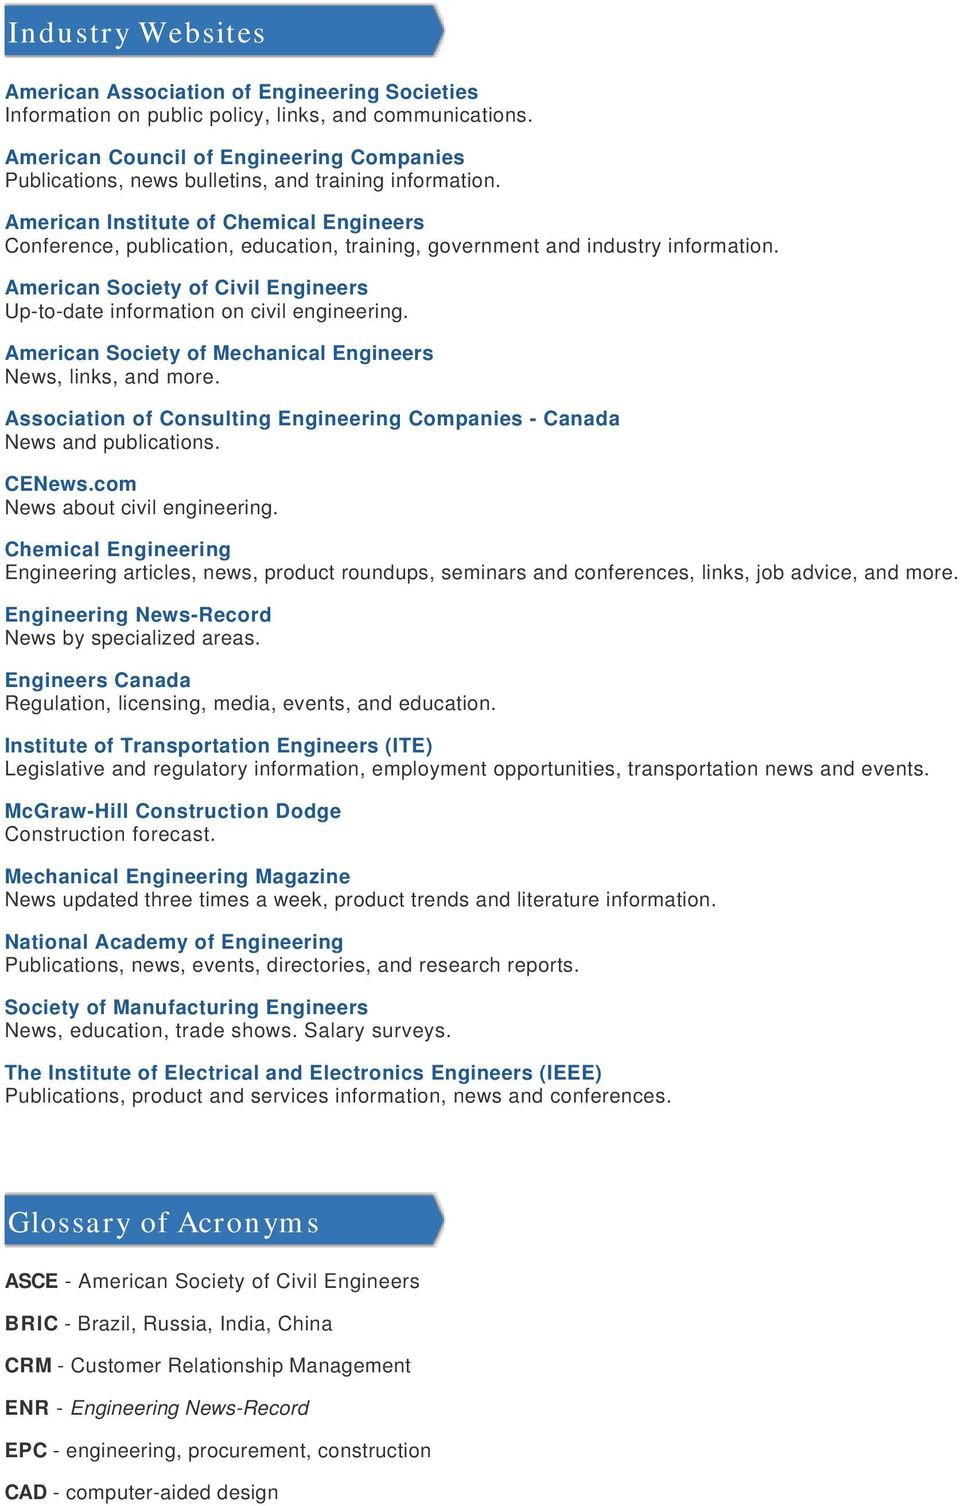 American Institute of Chemical Engineers Conference, publication, education, training, government and industry information.